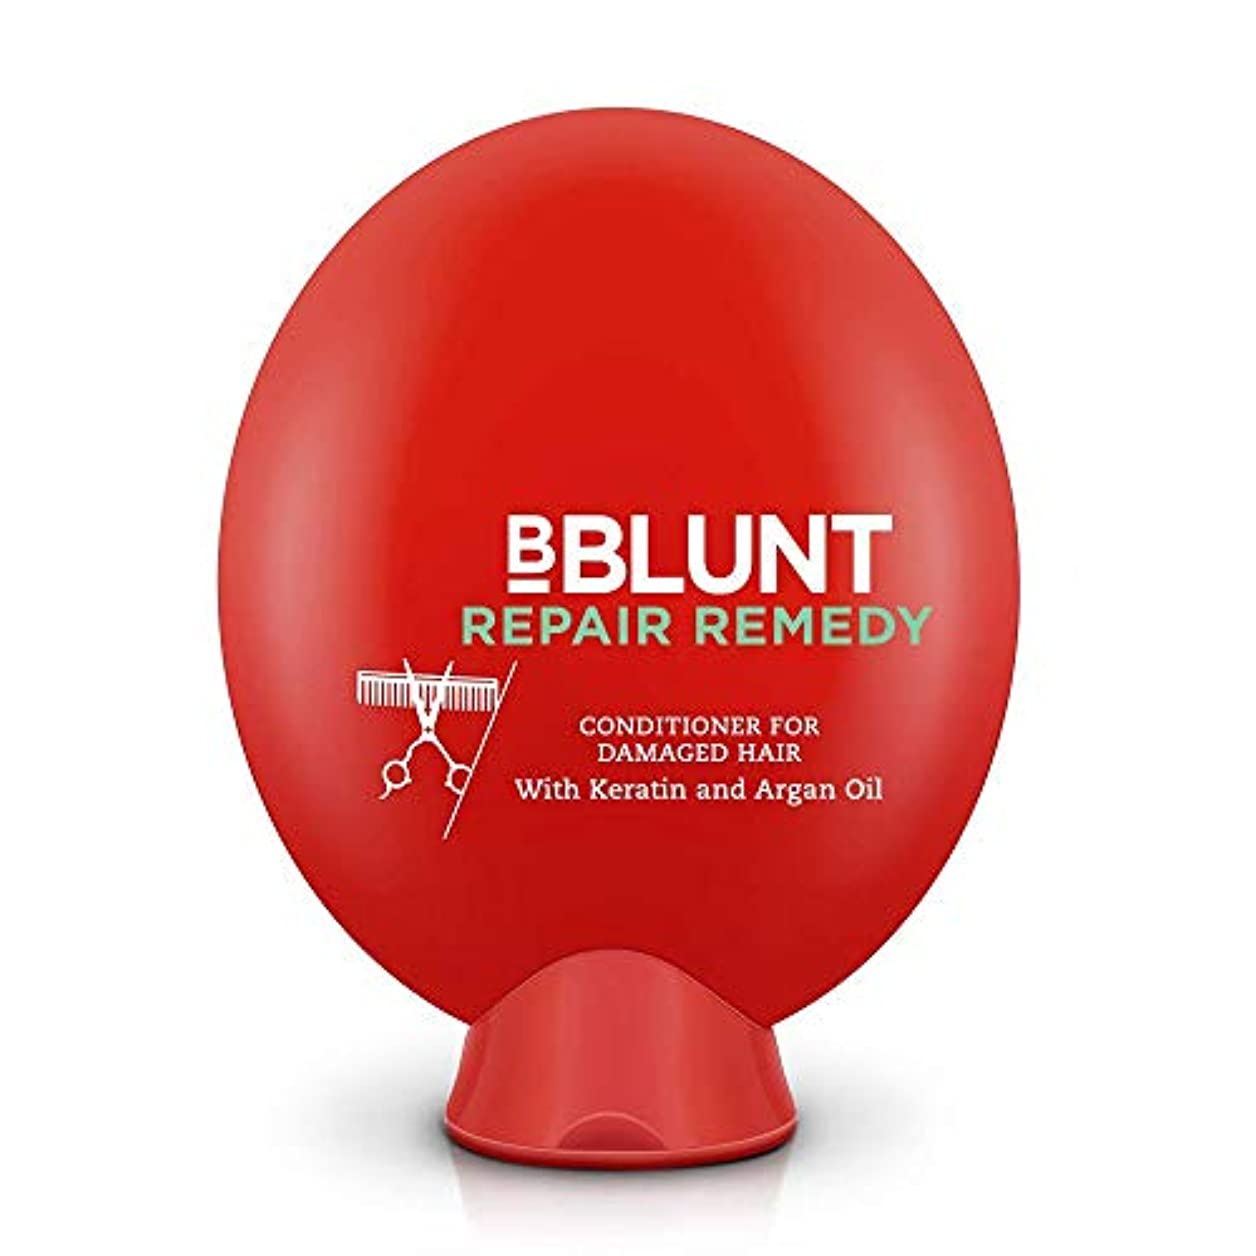 種ロック読みやすいBBLUNT Repair Remedy Conditioner for Damaged Hair, 200g (Keratin and Argan Oil)